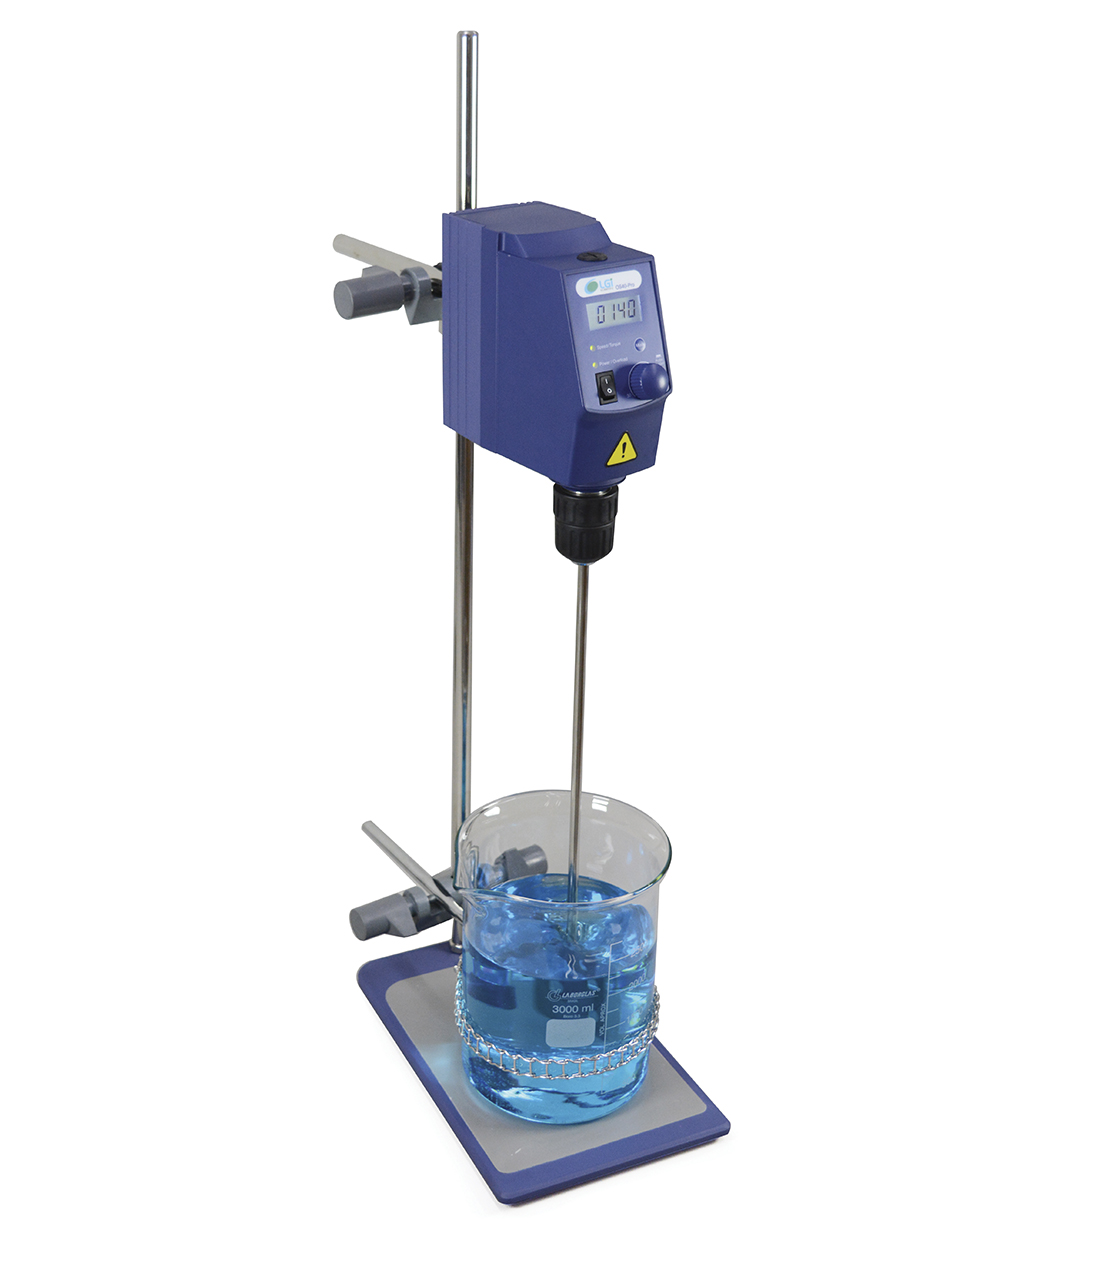 AGITADOR MECANICO DIGITAL -